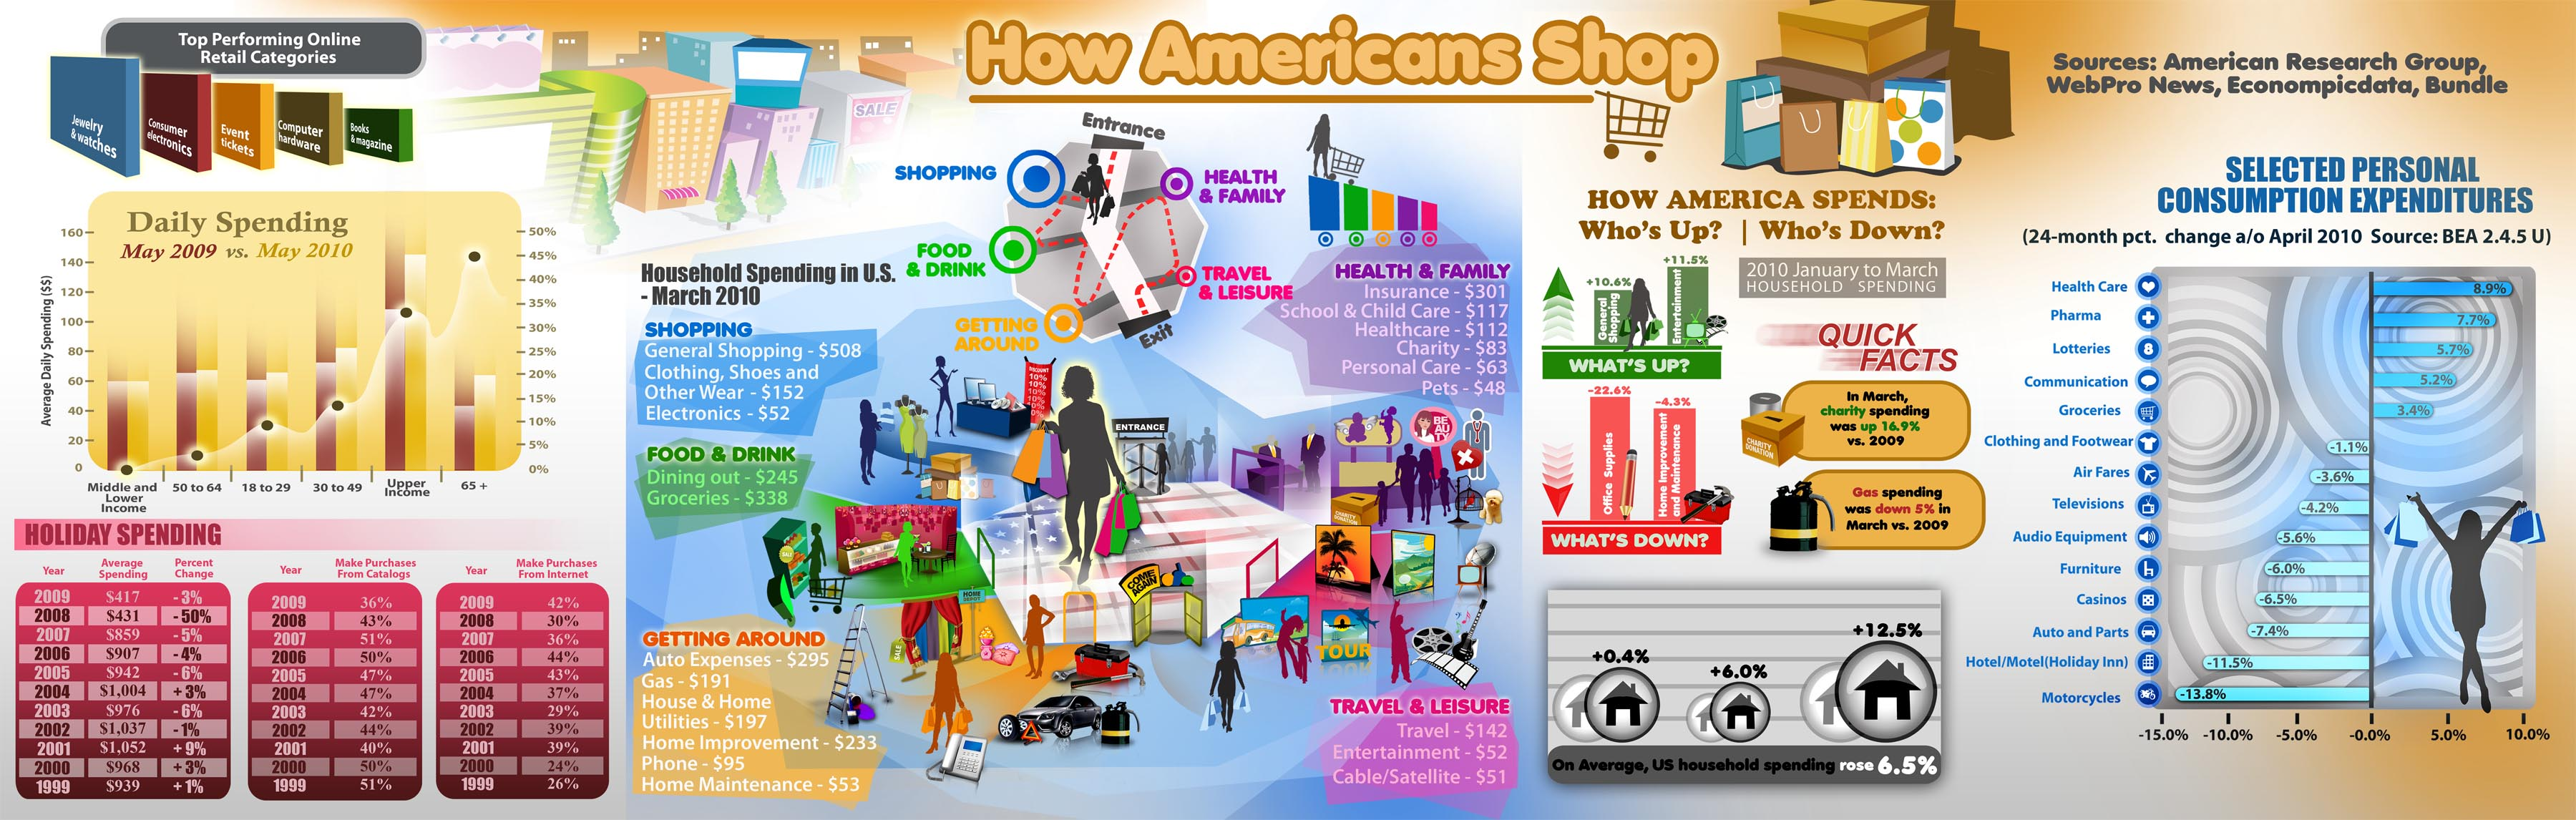 American-Shopping